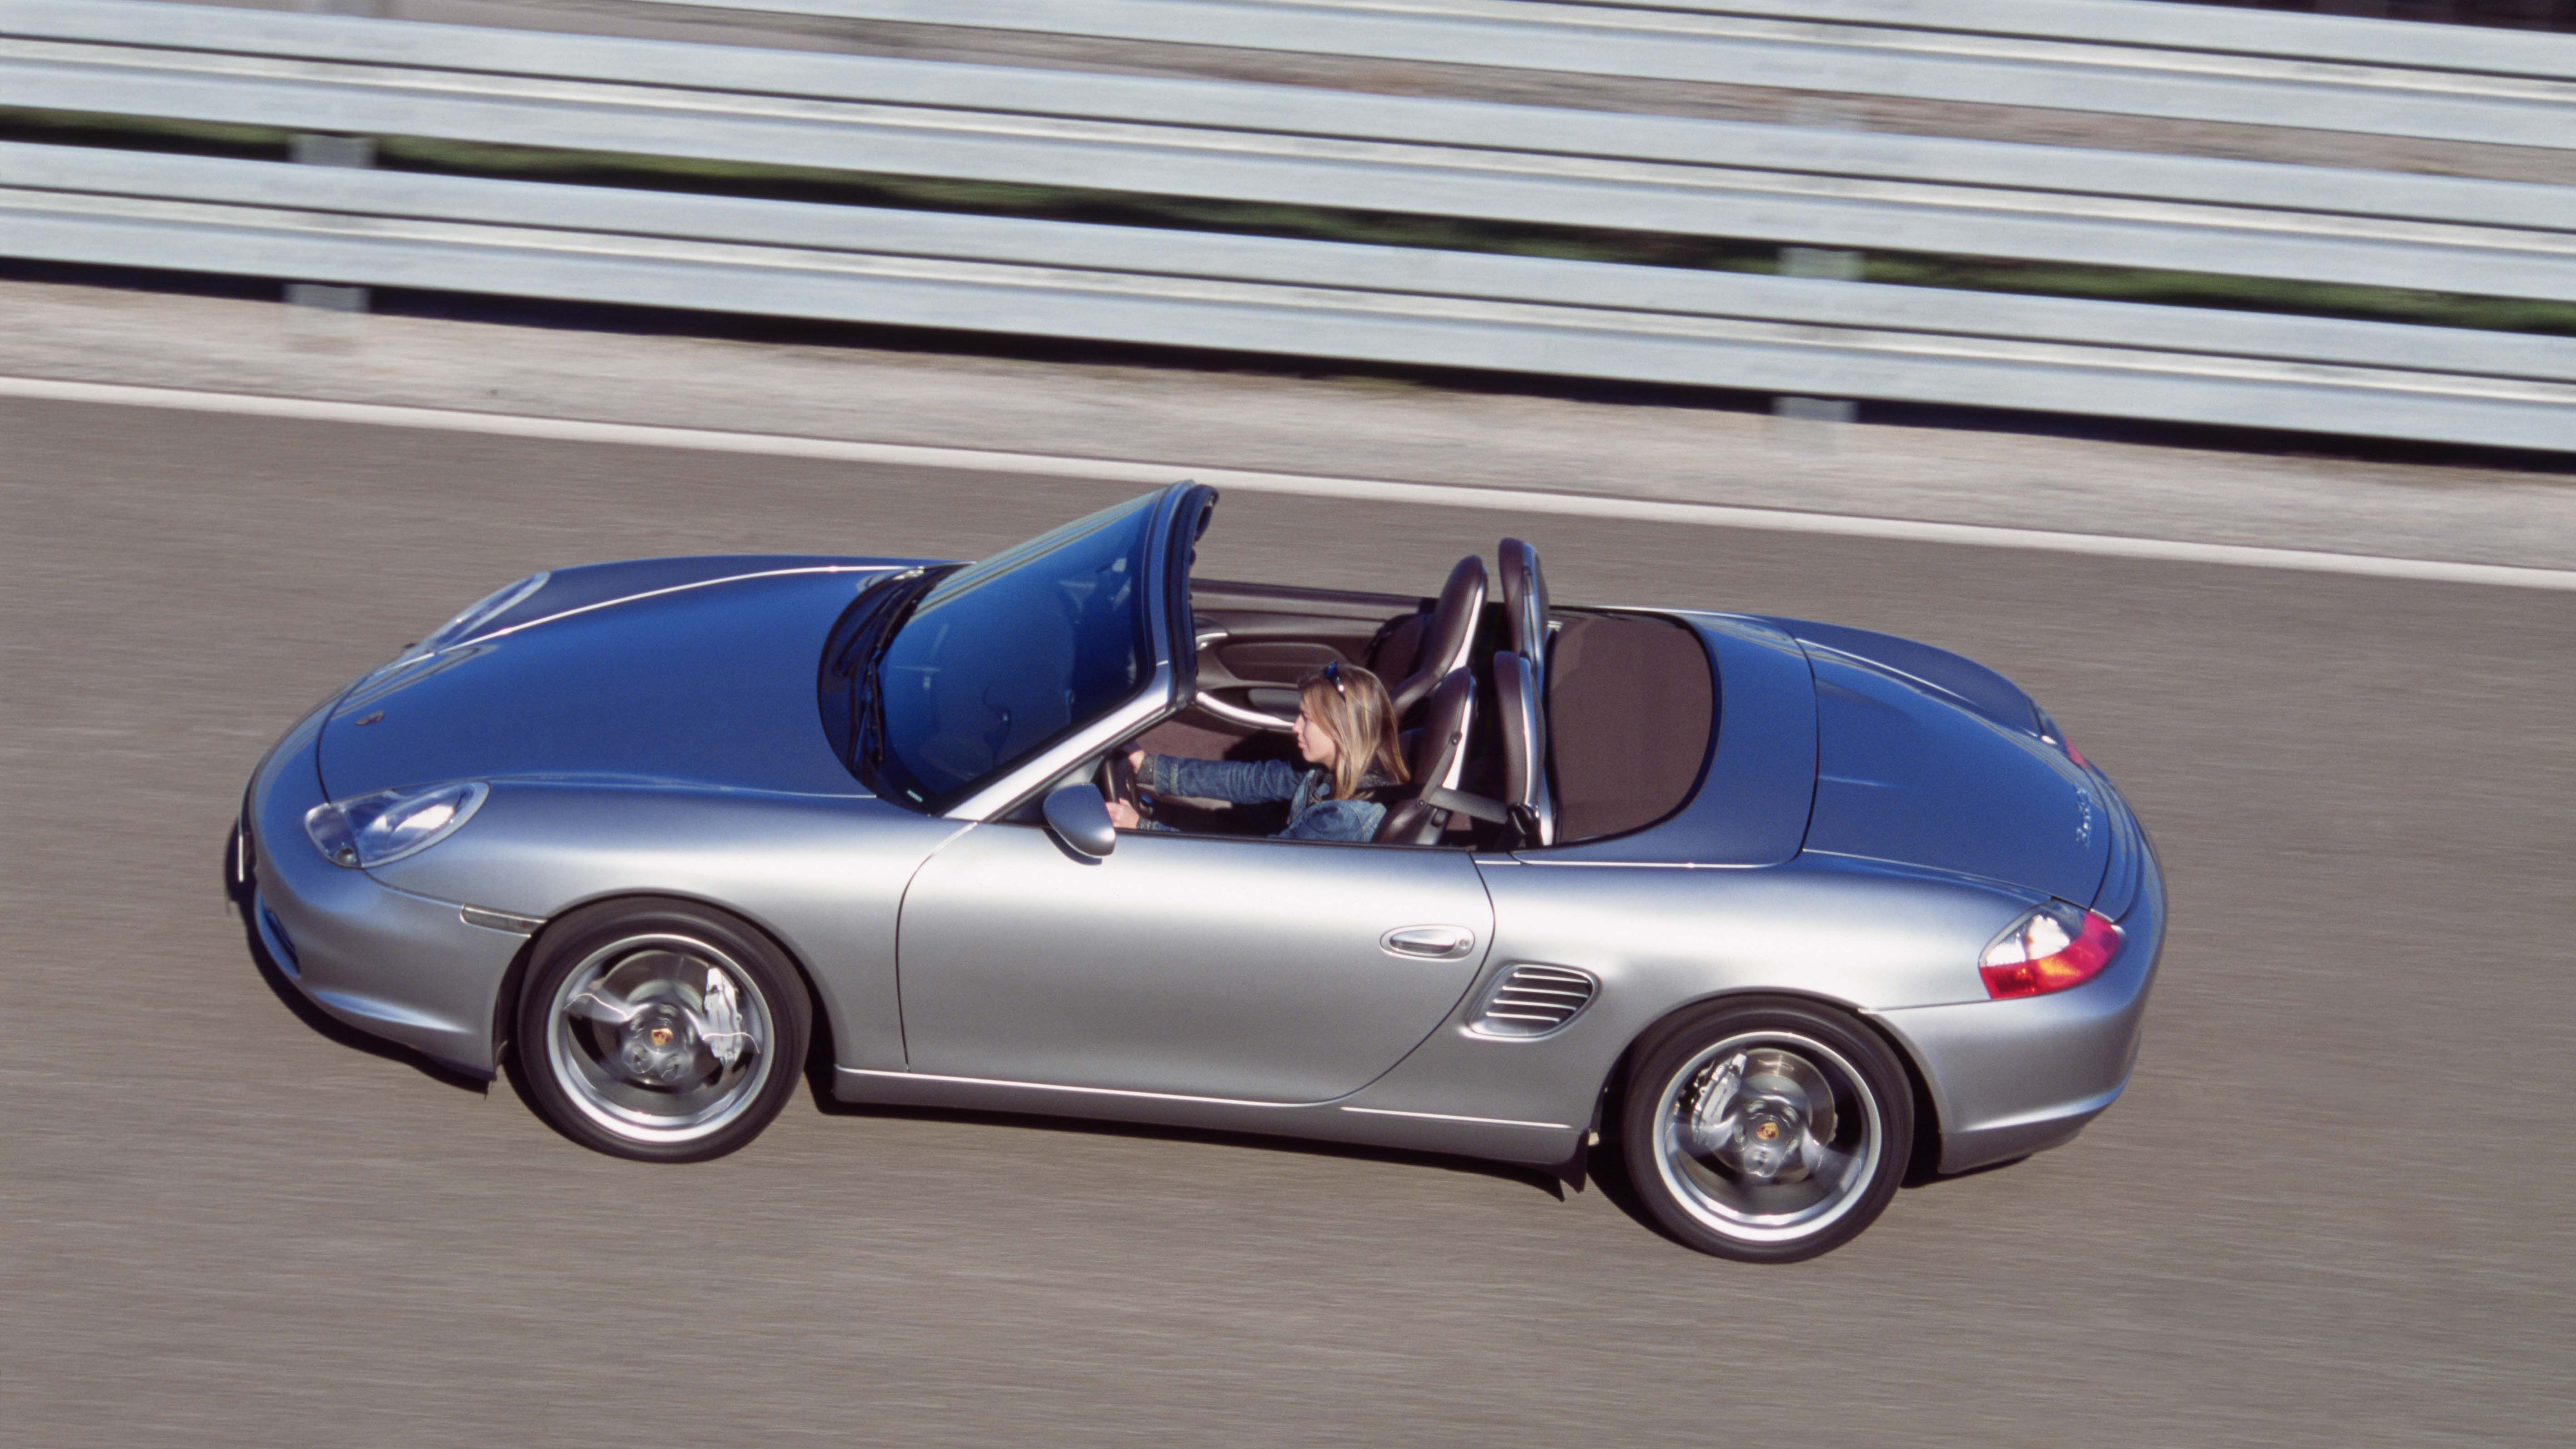 10 Reasons Why The Boxster Isn't Just A Poor Man's Porsche